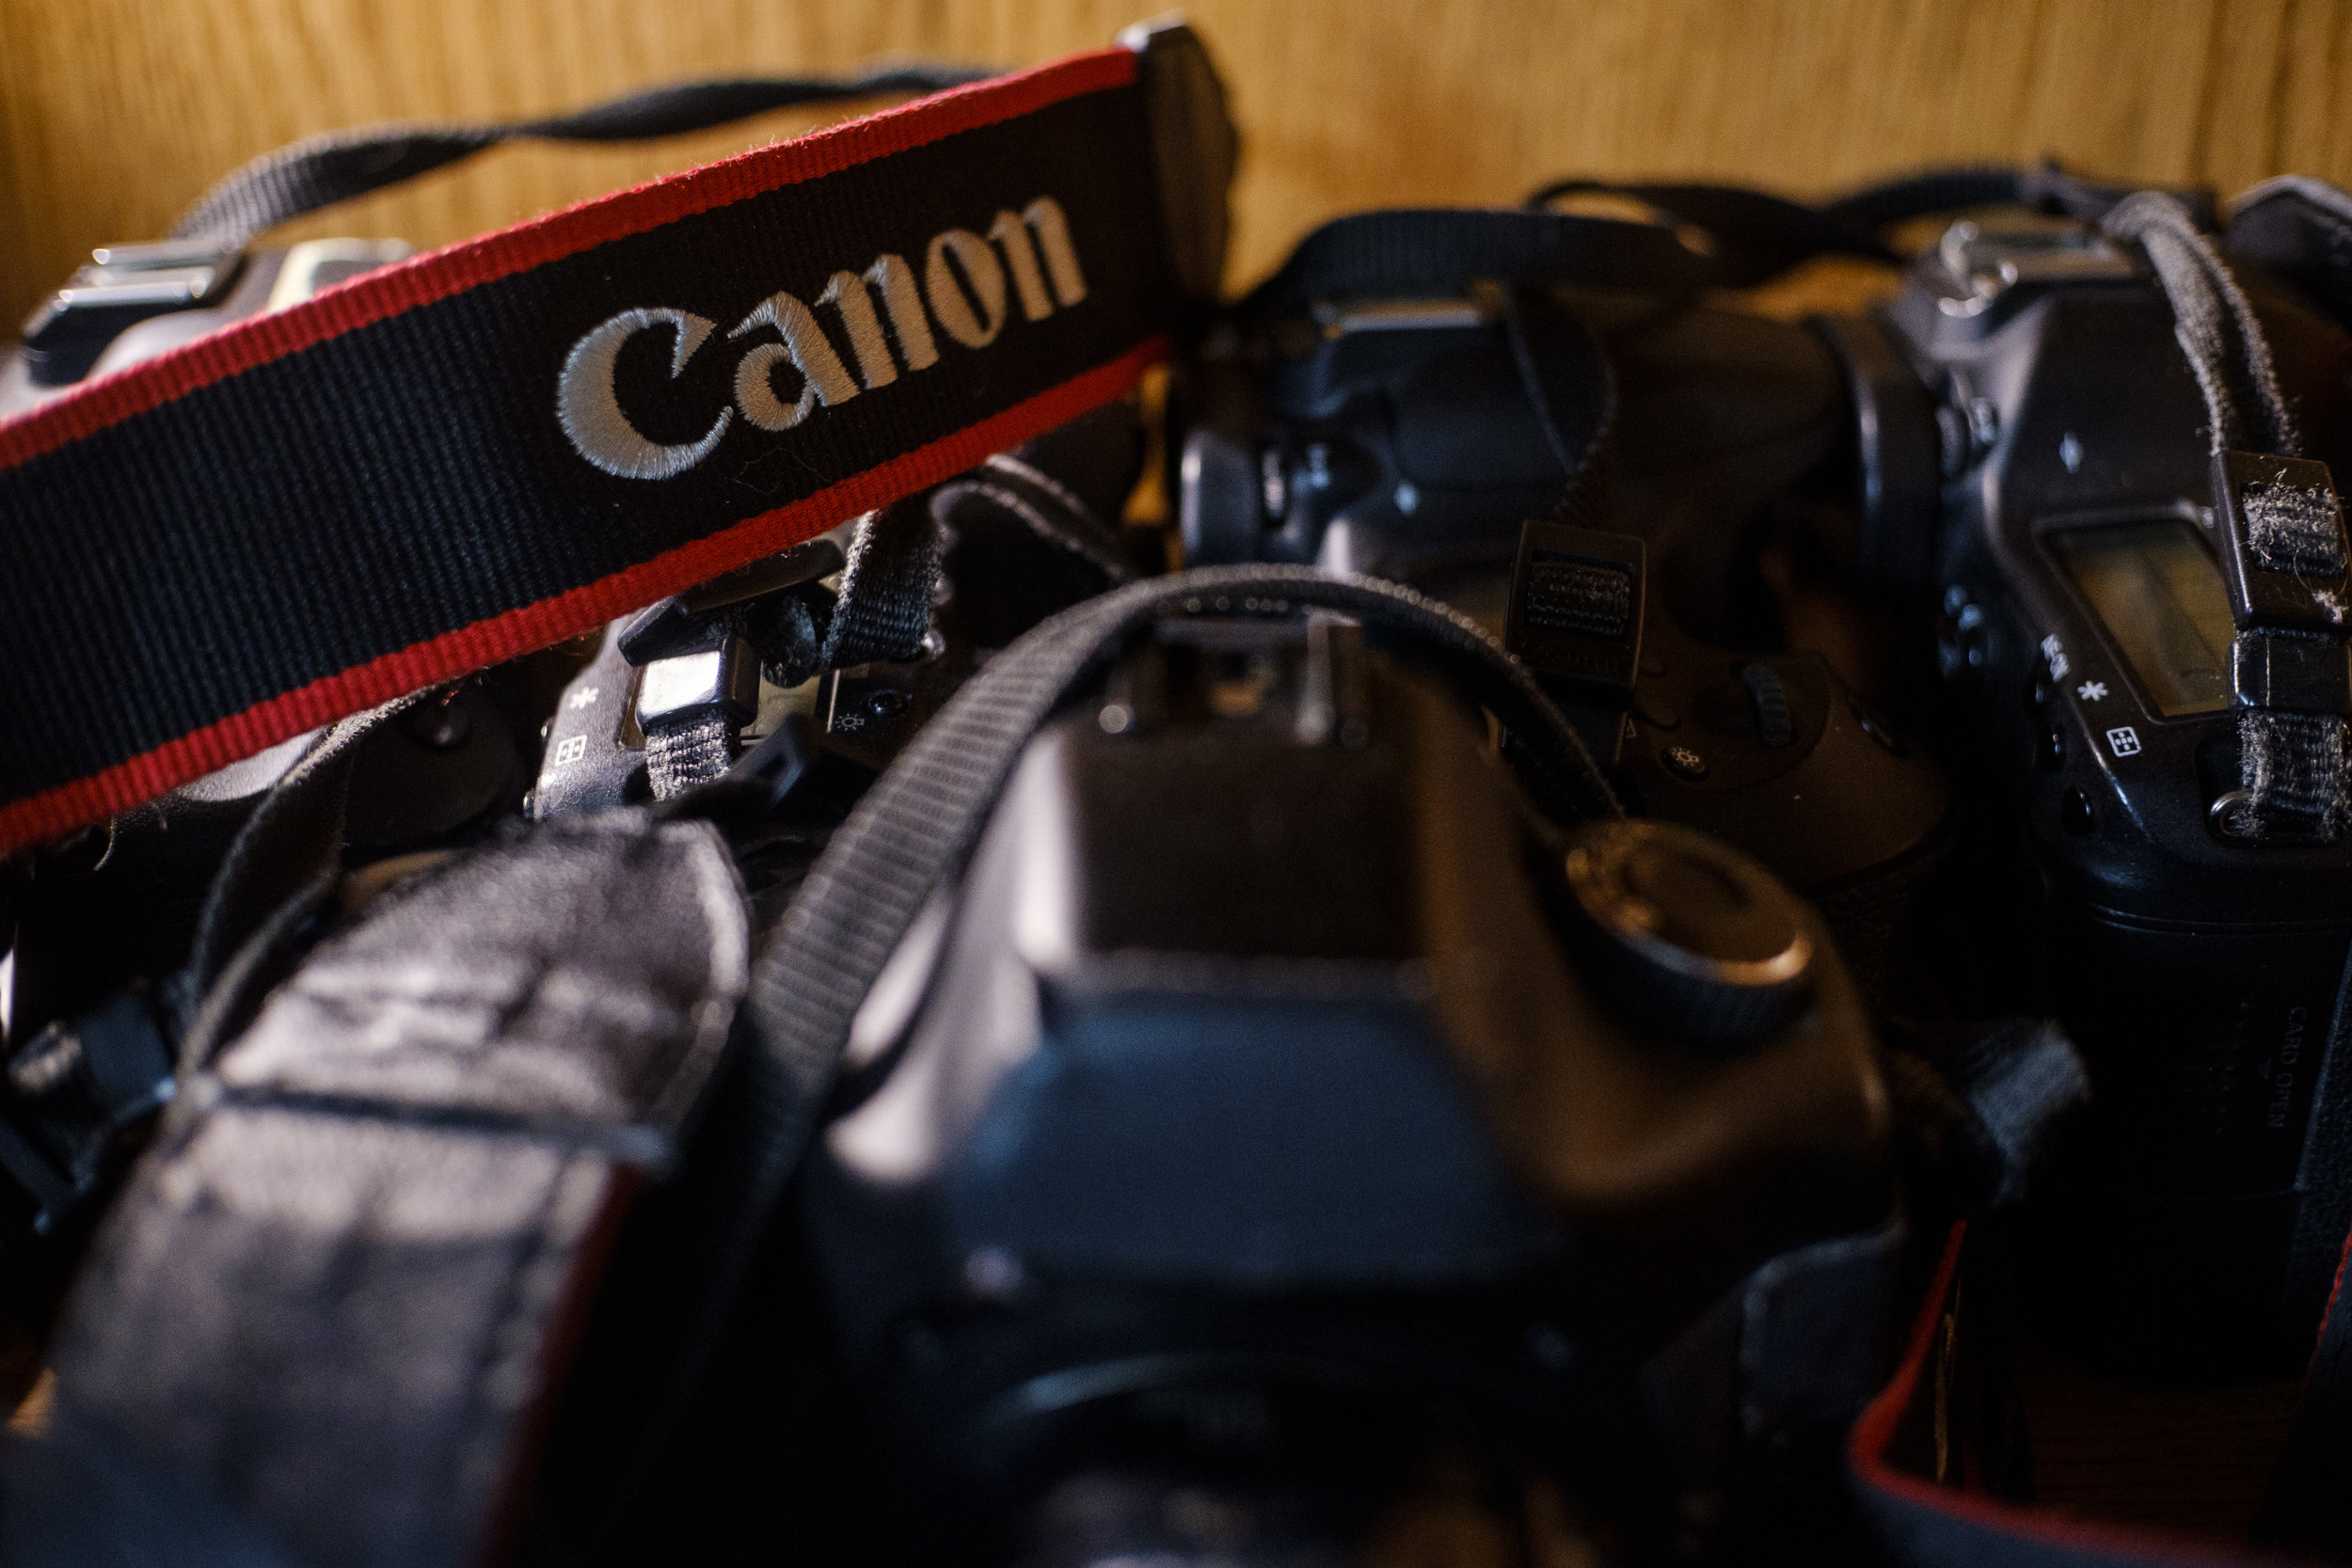 A selection of Canon DSLR cameras imaged with a FUJI XT20